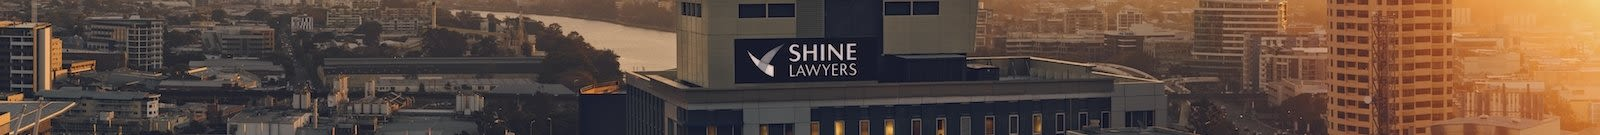 Shine Lawyers | bad financial advice | Shine Lawyers